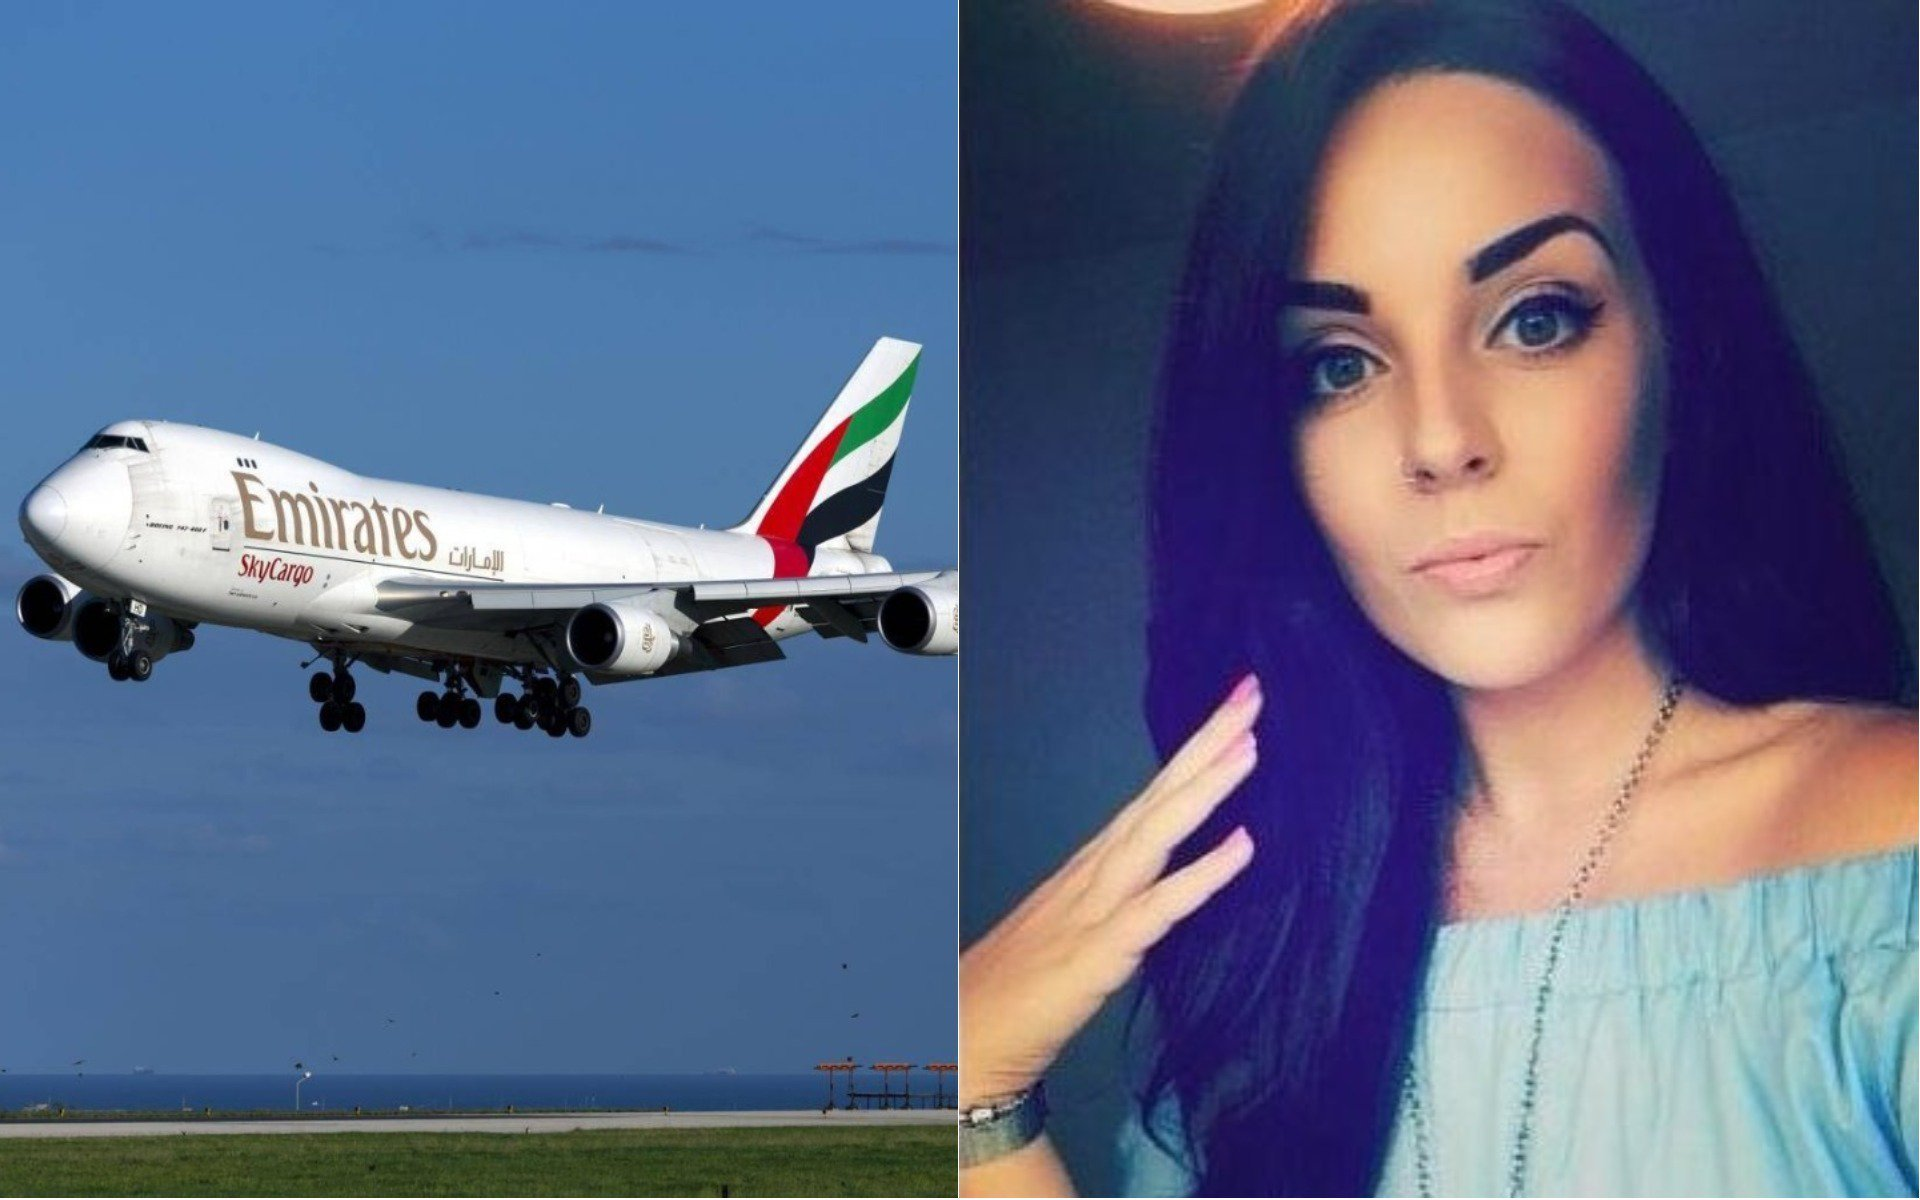 Woman thrown off Emirates flight after complaining about period pain to her boyfriend https://t.co/r1hRtbjX0U https://t.co/0lnTwe33Ro